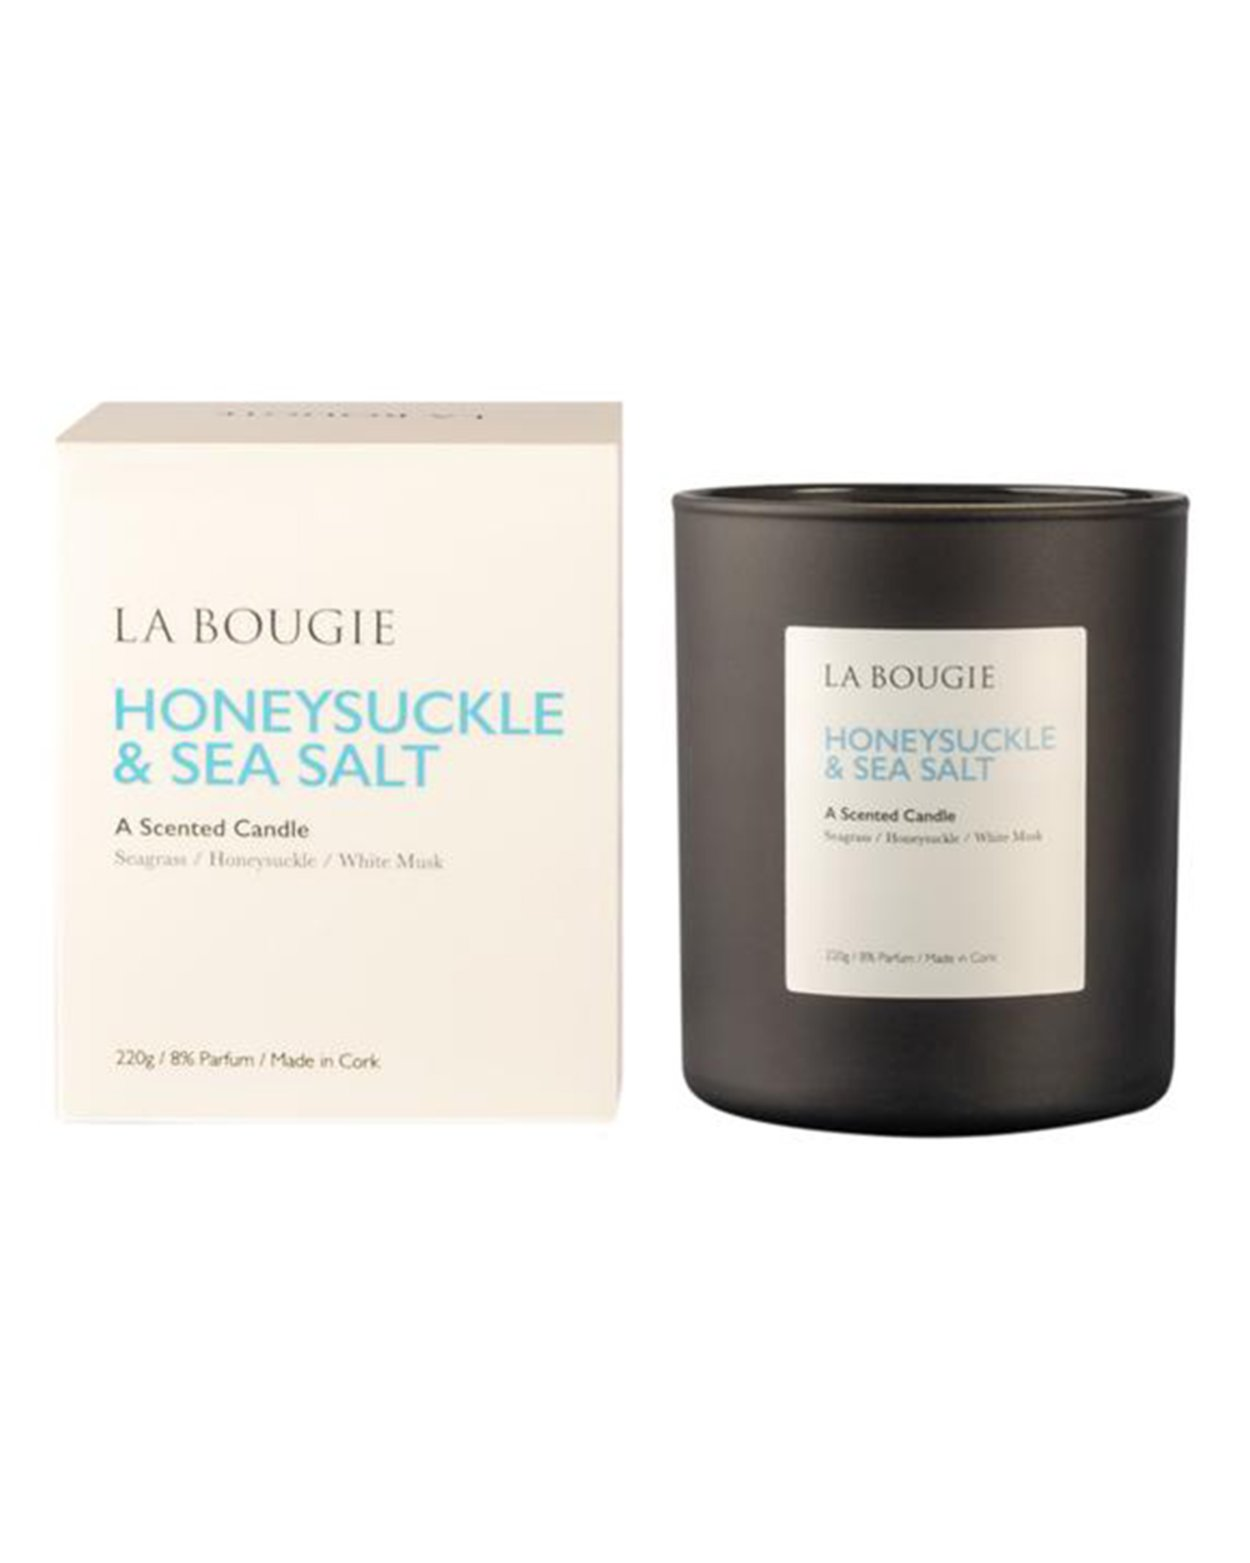 Honeysuckle & Sea Salt Scented Candle